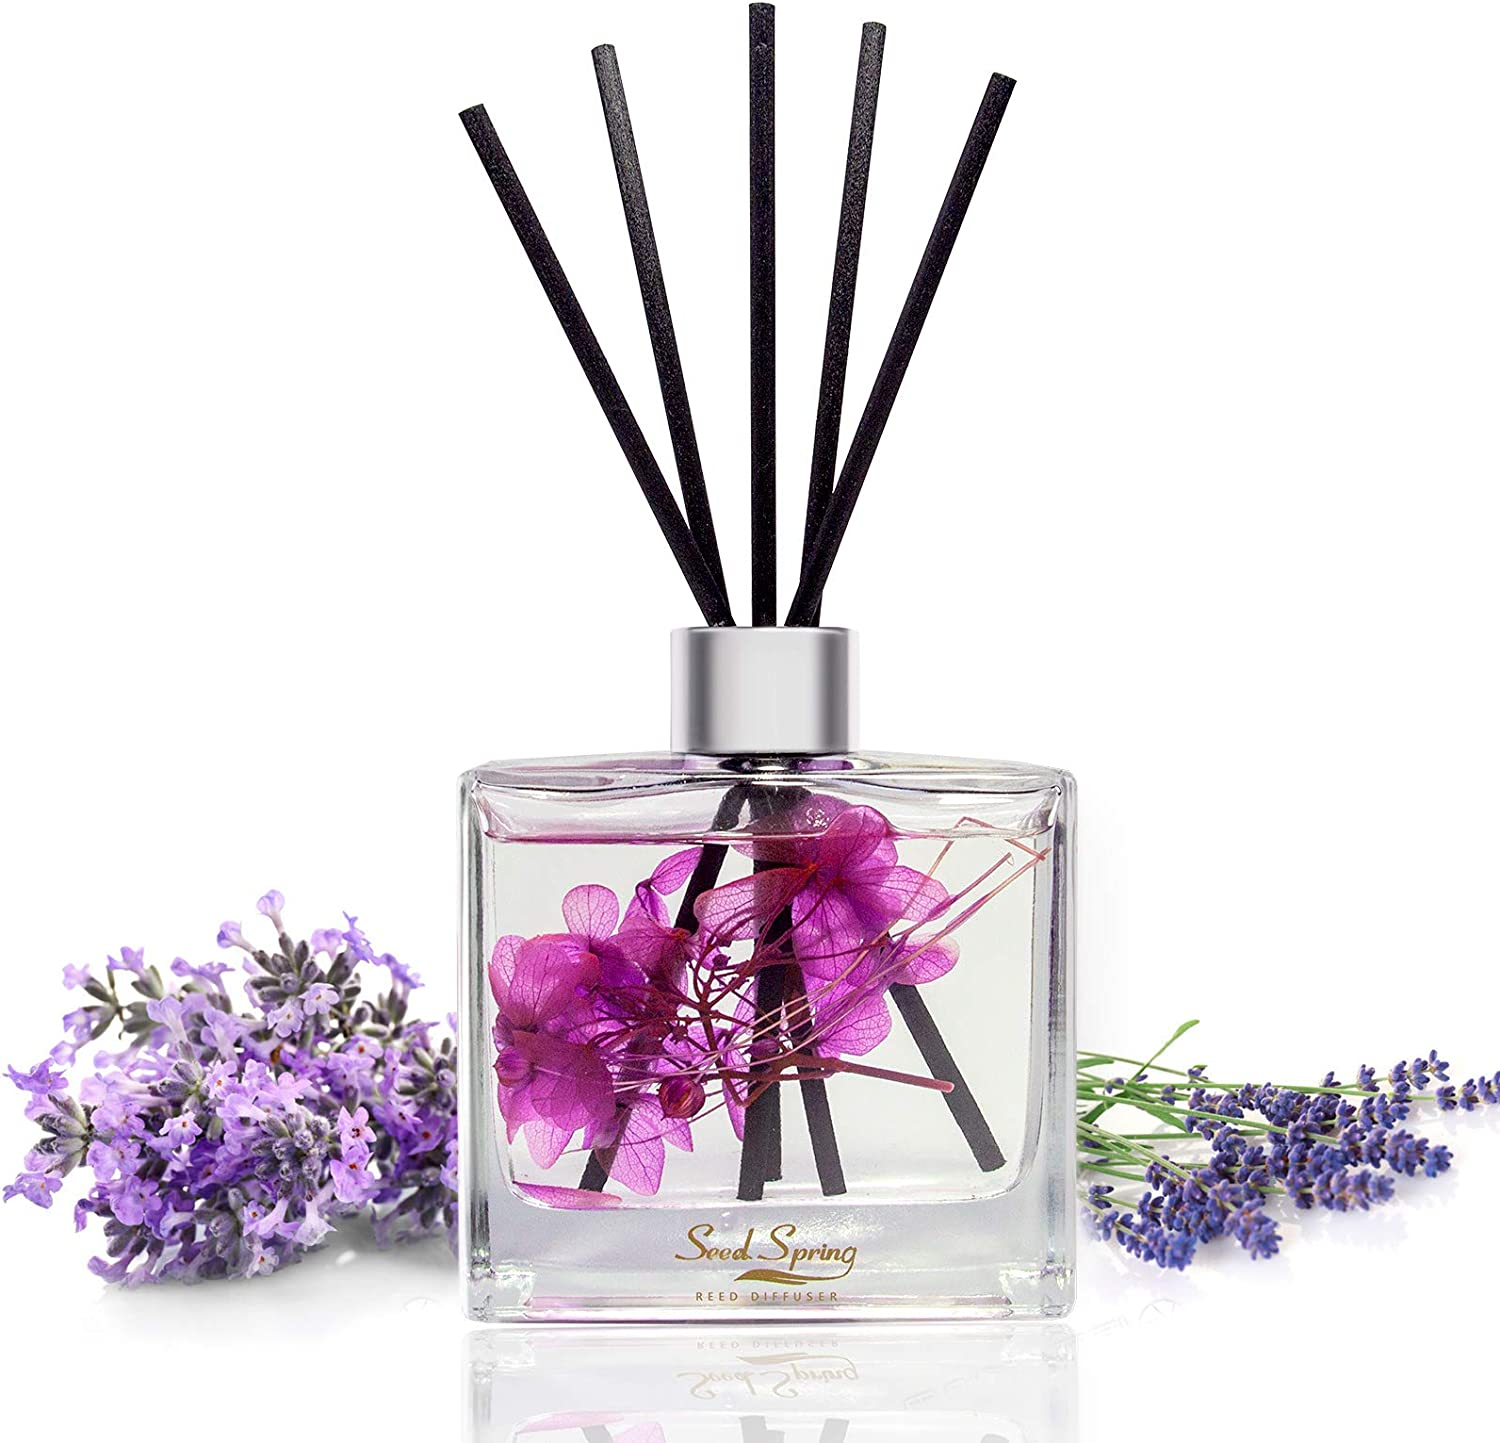 Seed Spring Reed Diffuser Lavender Aromatherapy Oil Effectively Improves Sleep soothes Mood and stabilizes Nerves Home Decoration and Office Decoration Perfume and Gifts 6.7oz (200ml)